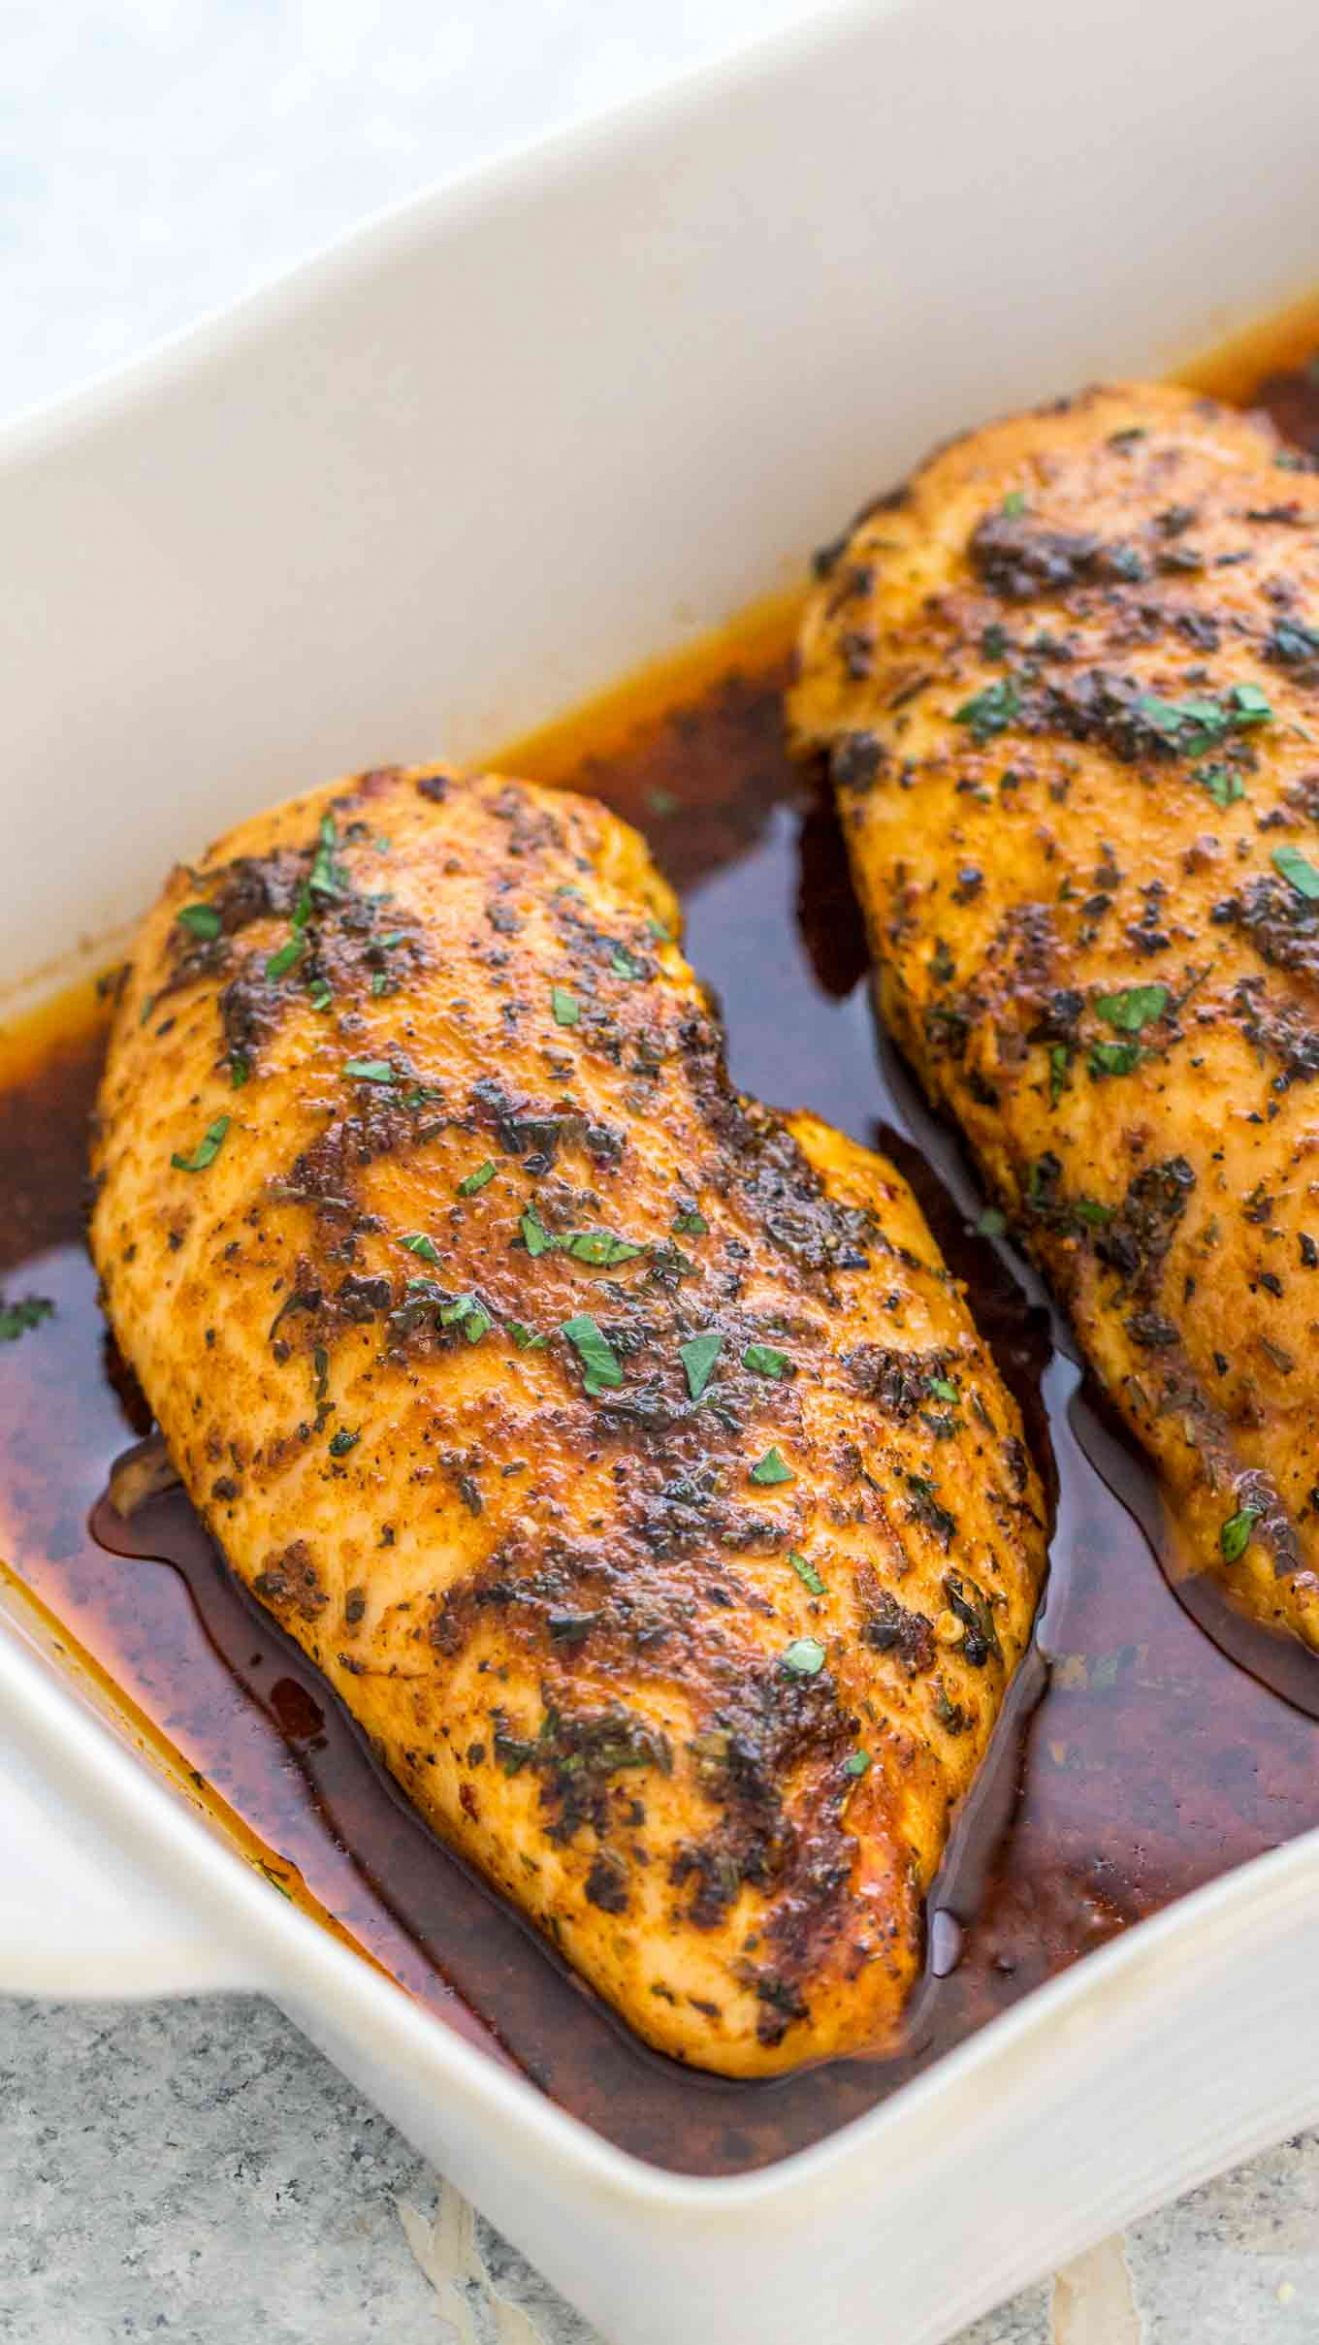 Baked Chicken Breasts - Recipes For Chicken Breast Videos